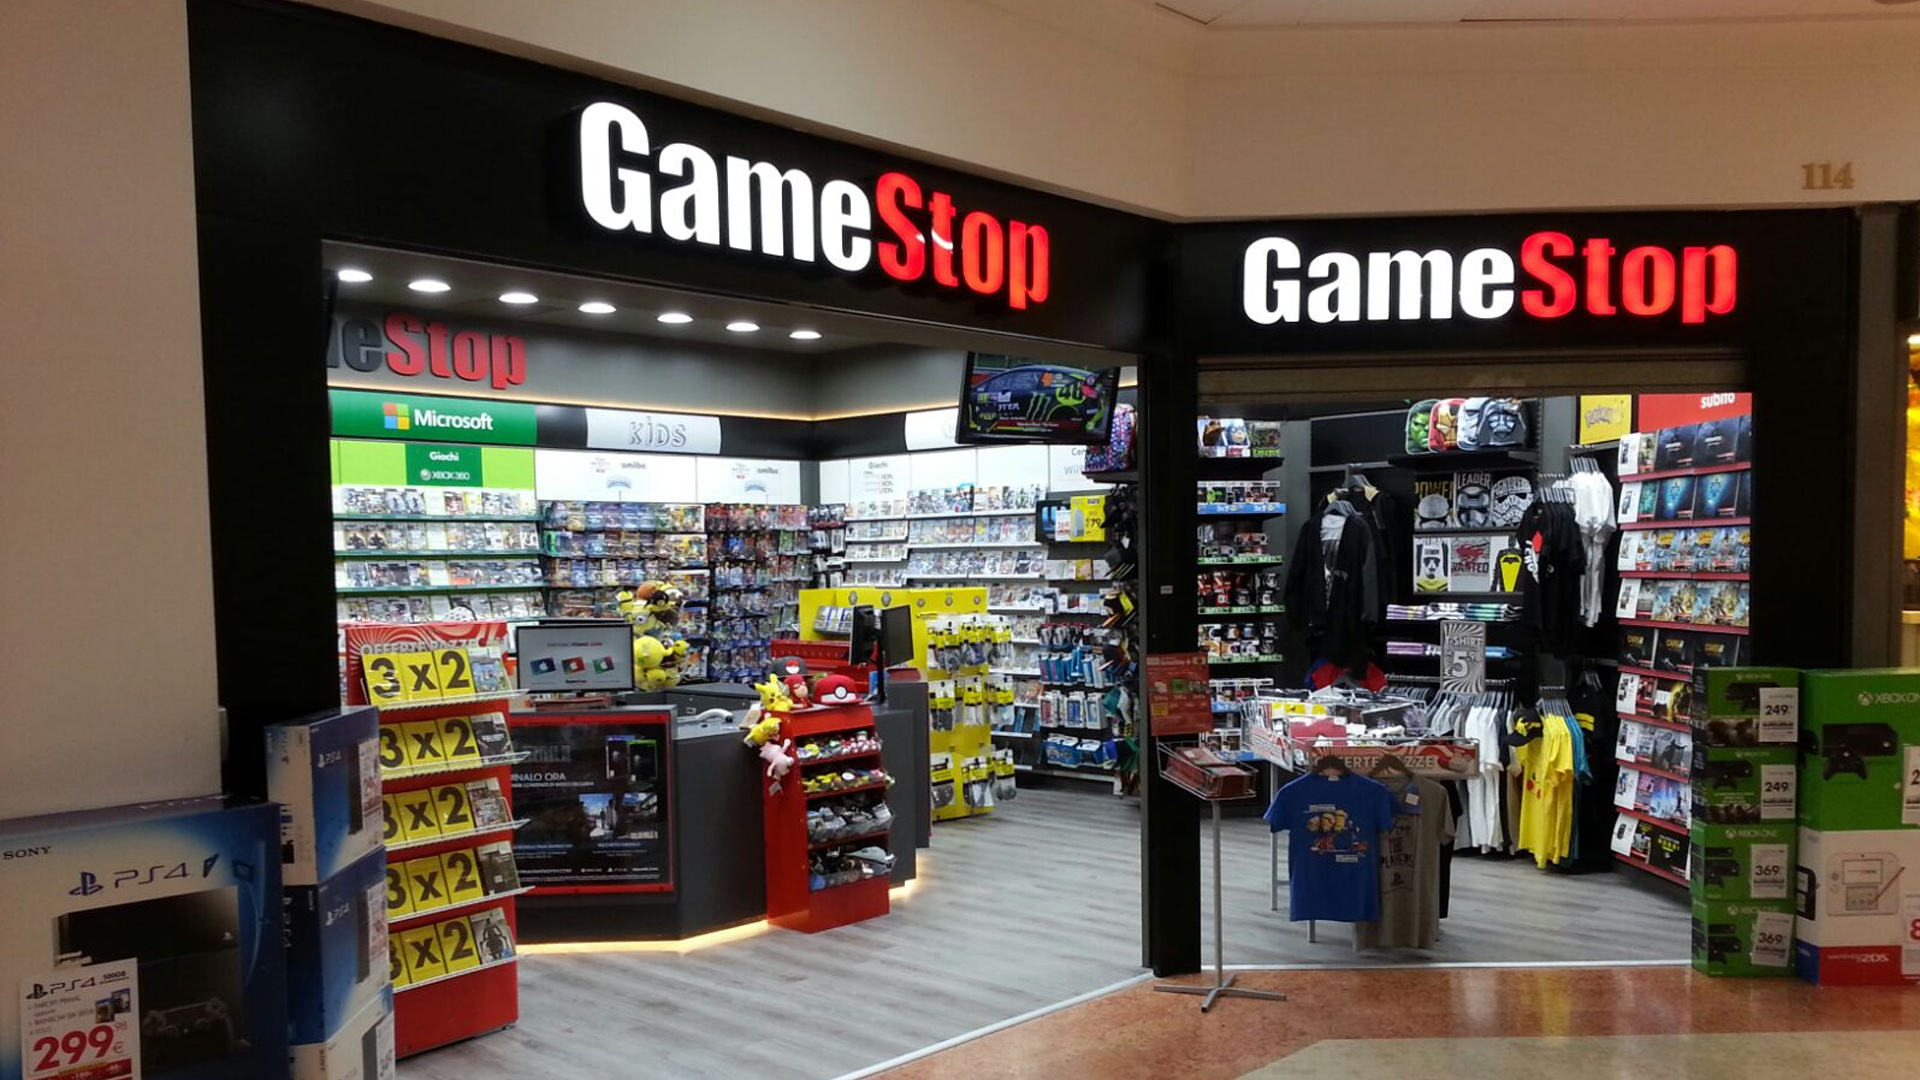 GameStop 'Temporarily Pauses' Unlimited Used Games Program